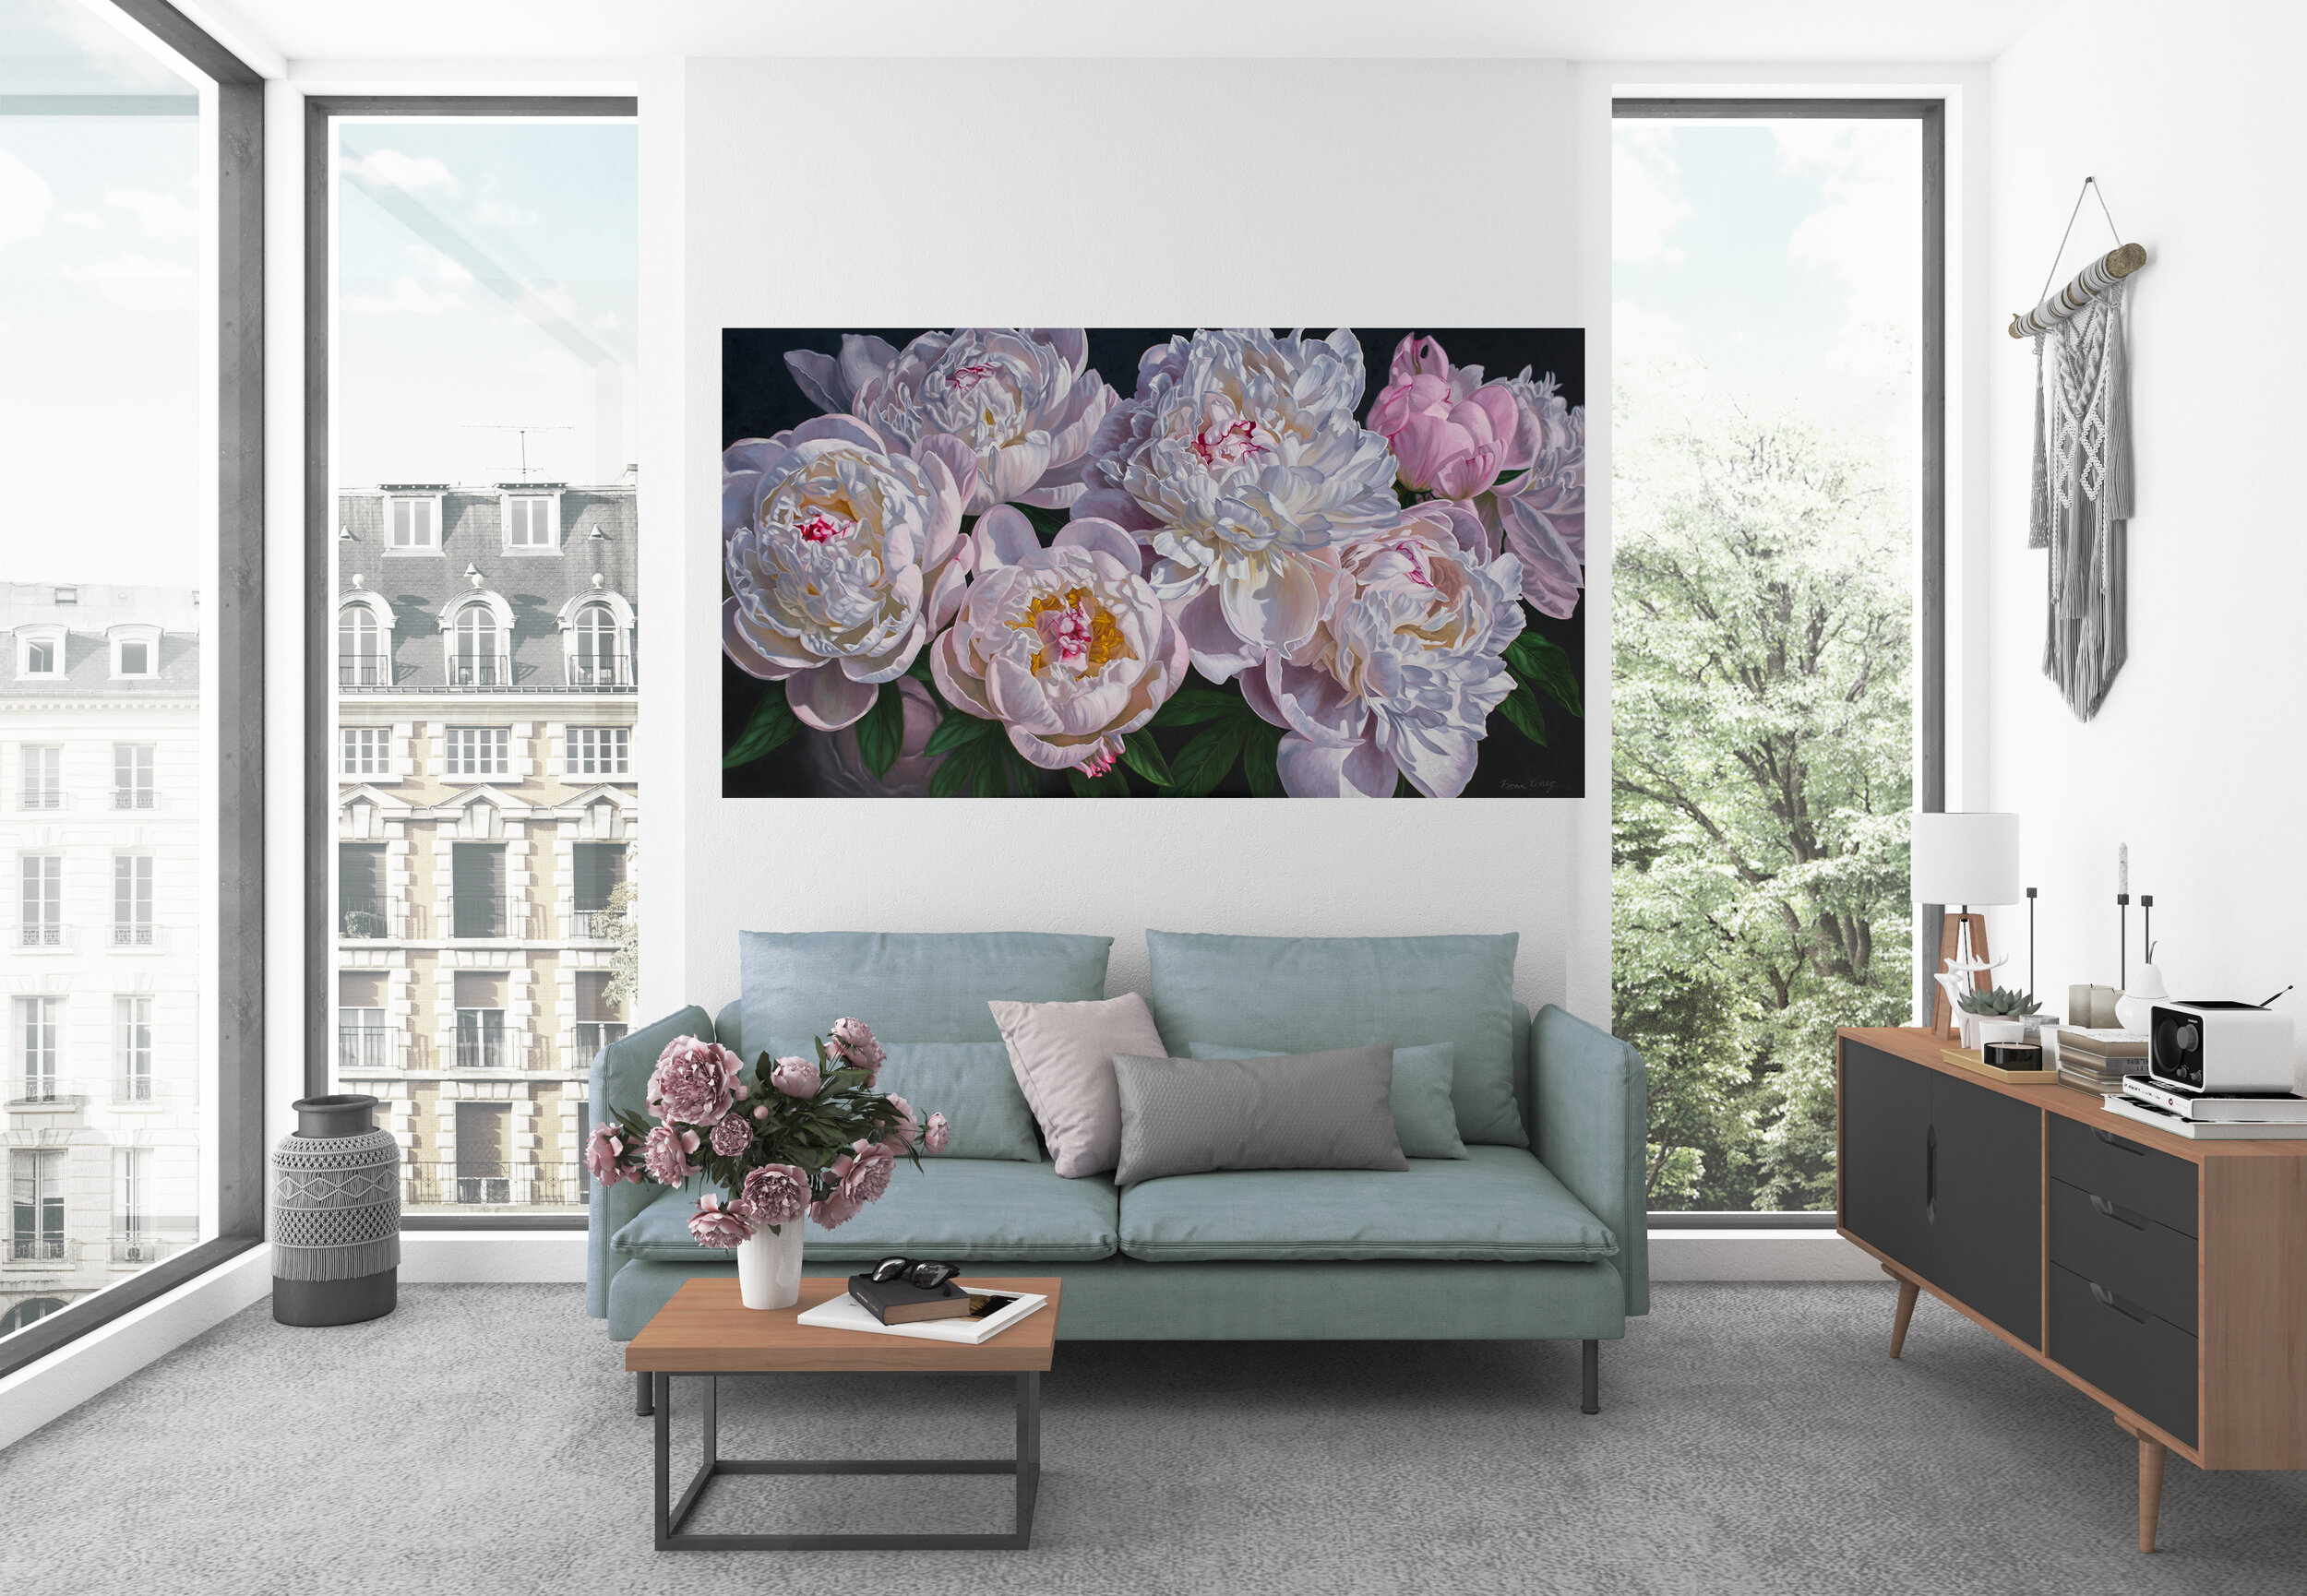 "Panorama of Peonies, 2 , oil on canvas, 62"" x 34"", in living room mockup."